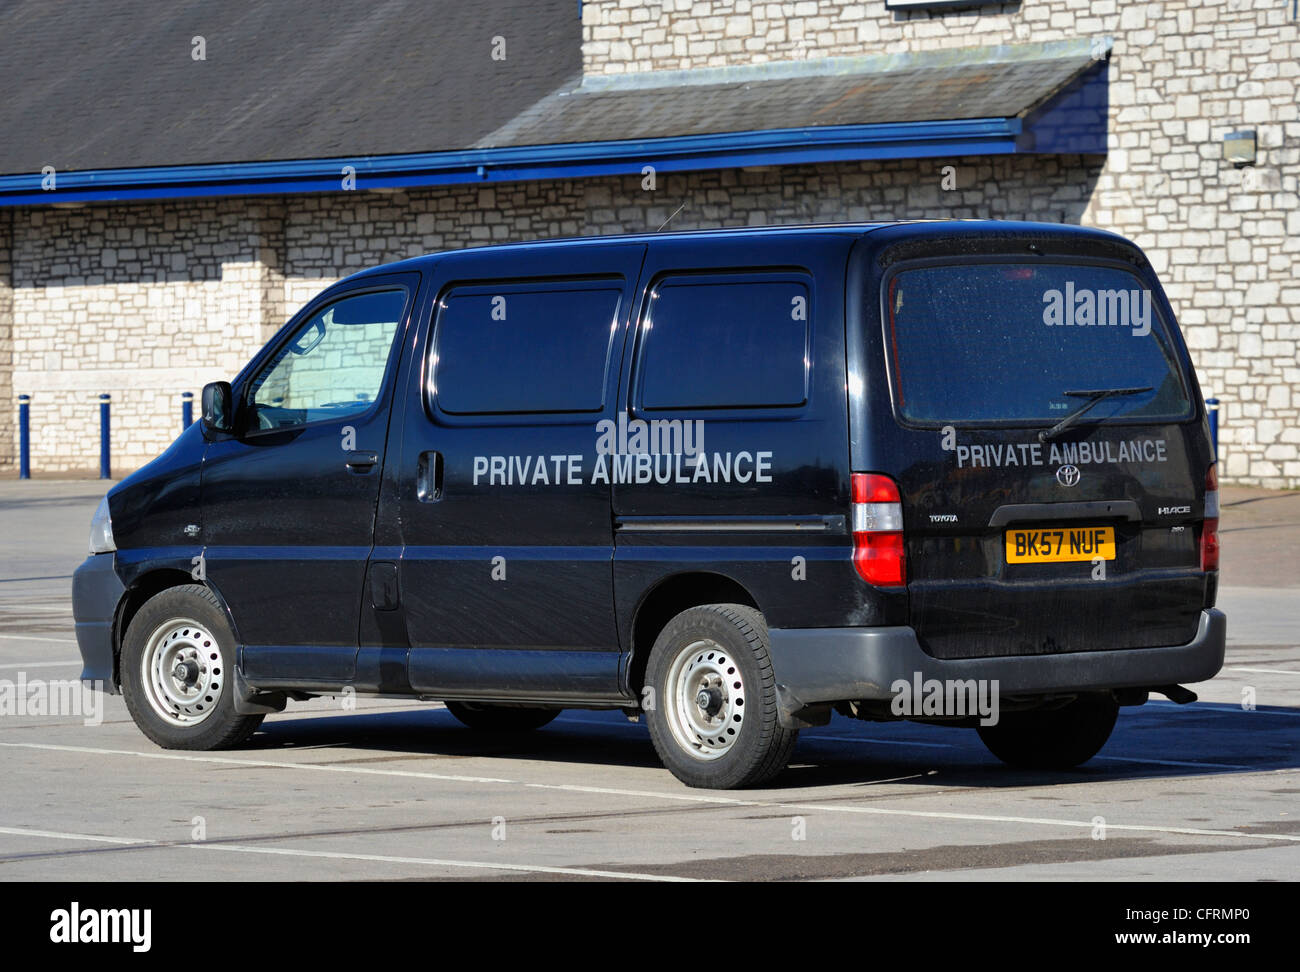 private-ambulance-the-old-showground-kendal-cumbria-england-united-CFRMP0.jpg